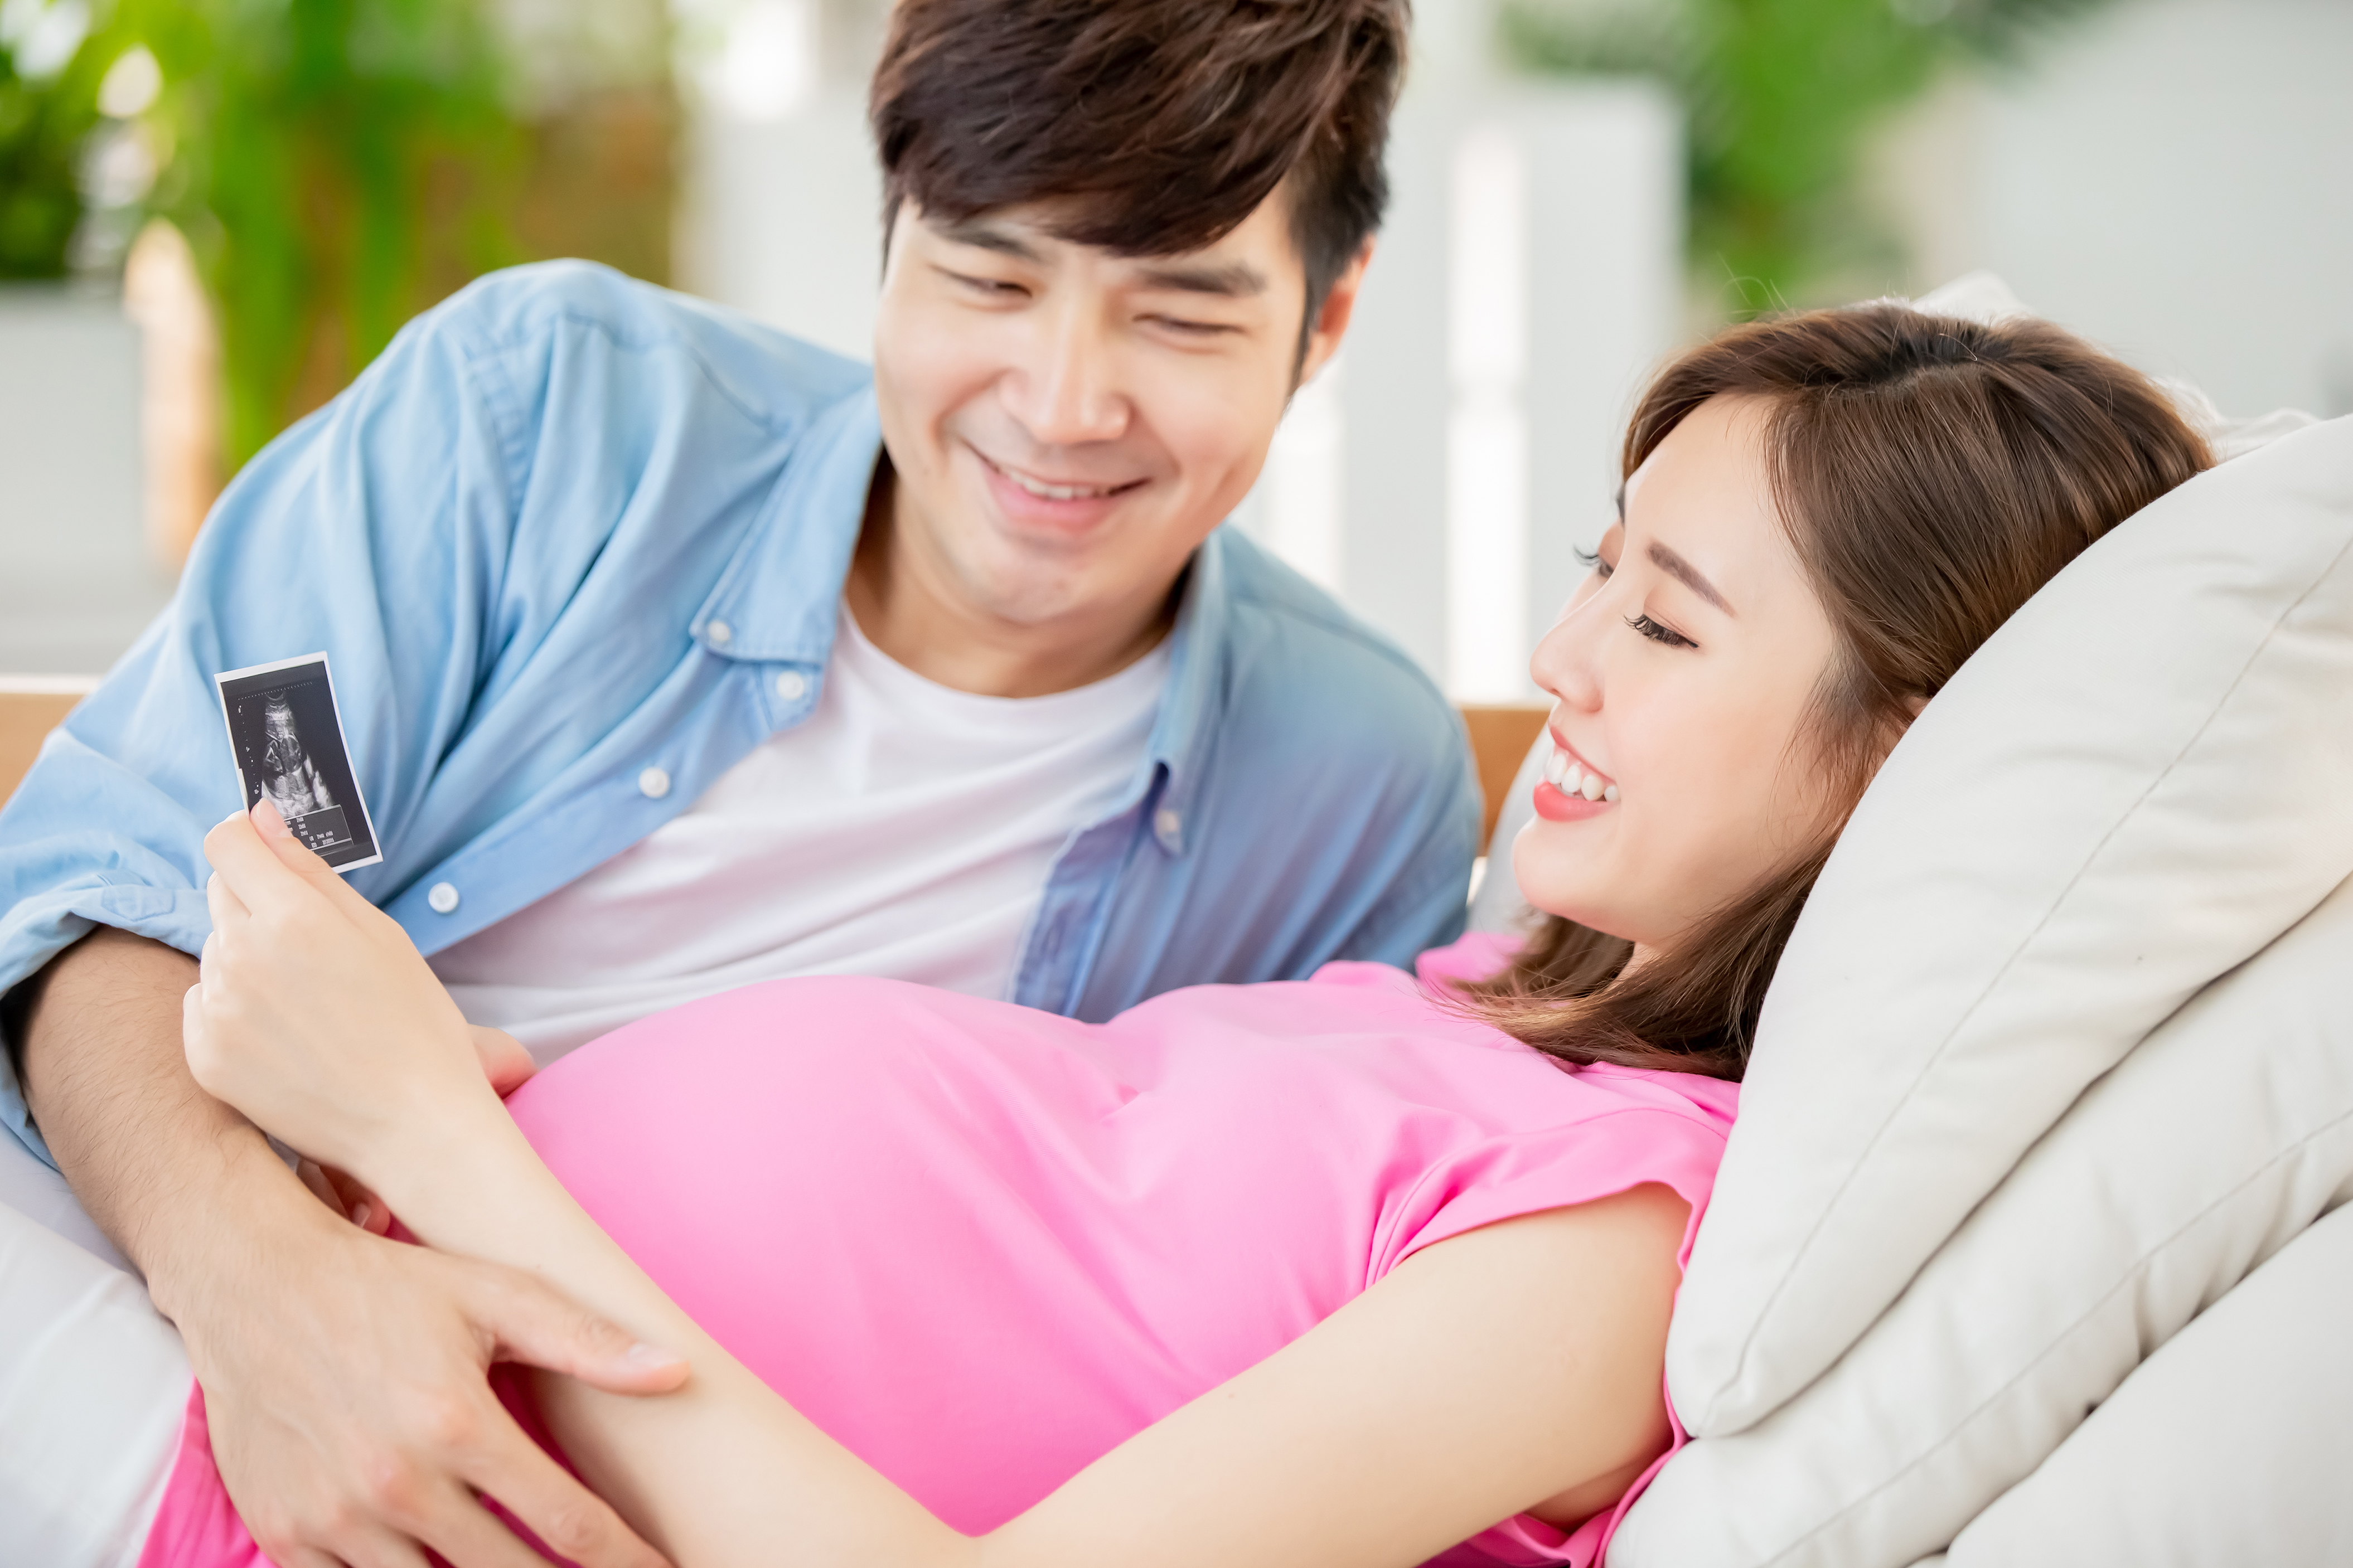 Relevant Tips for a Good Prenatal Care